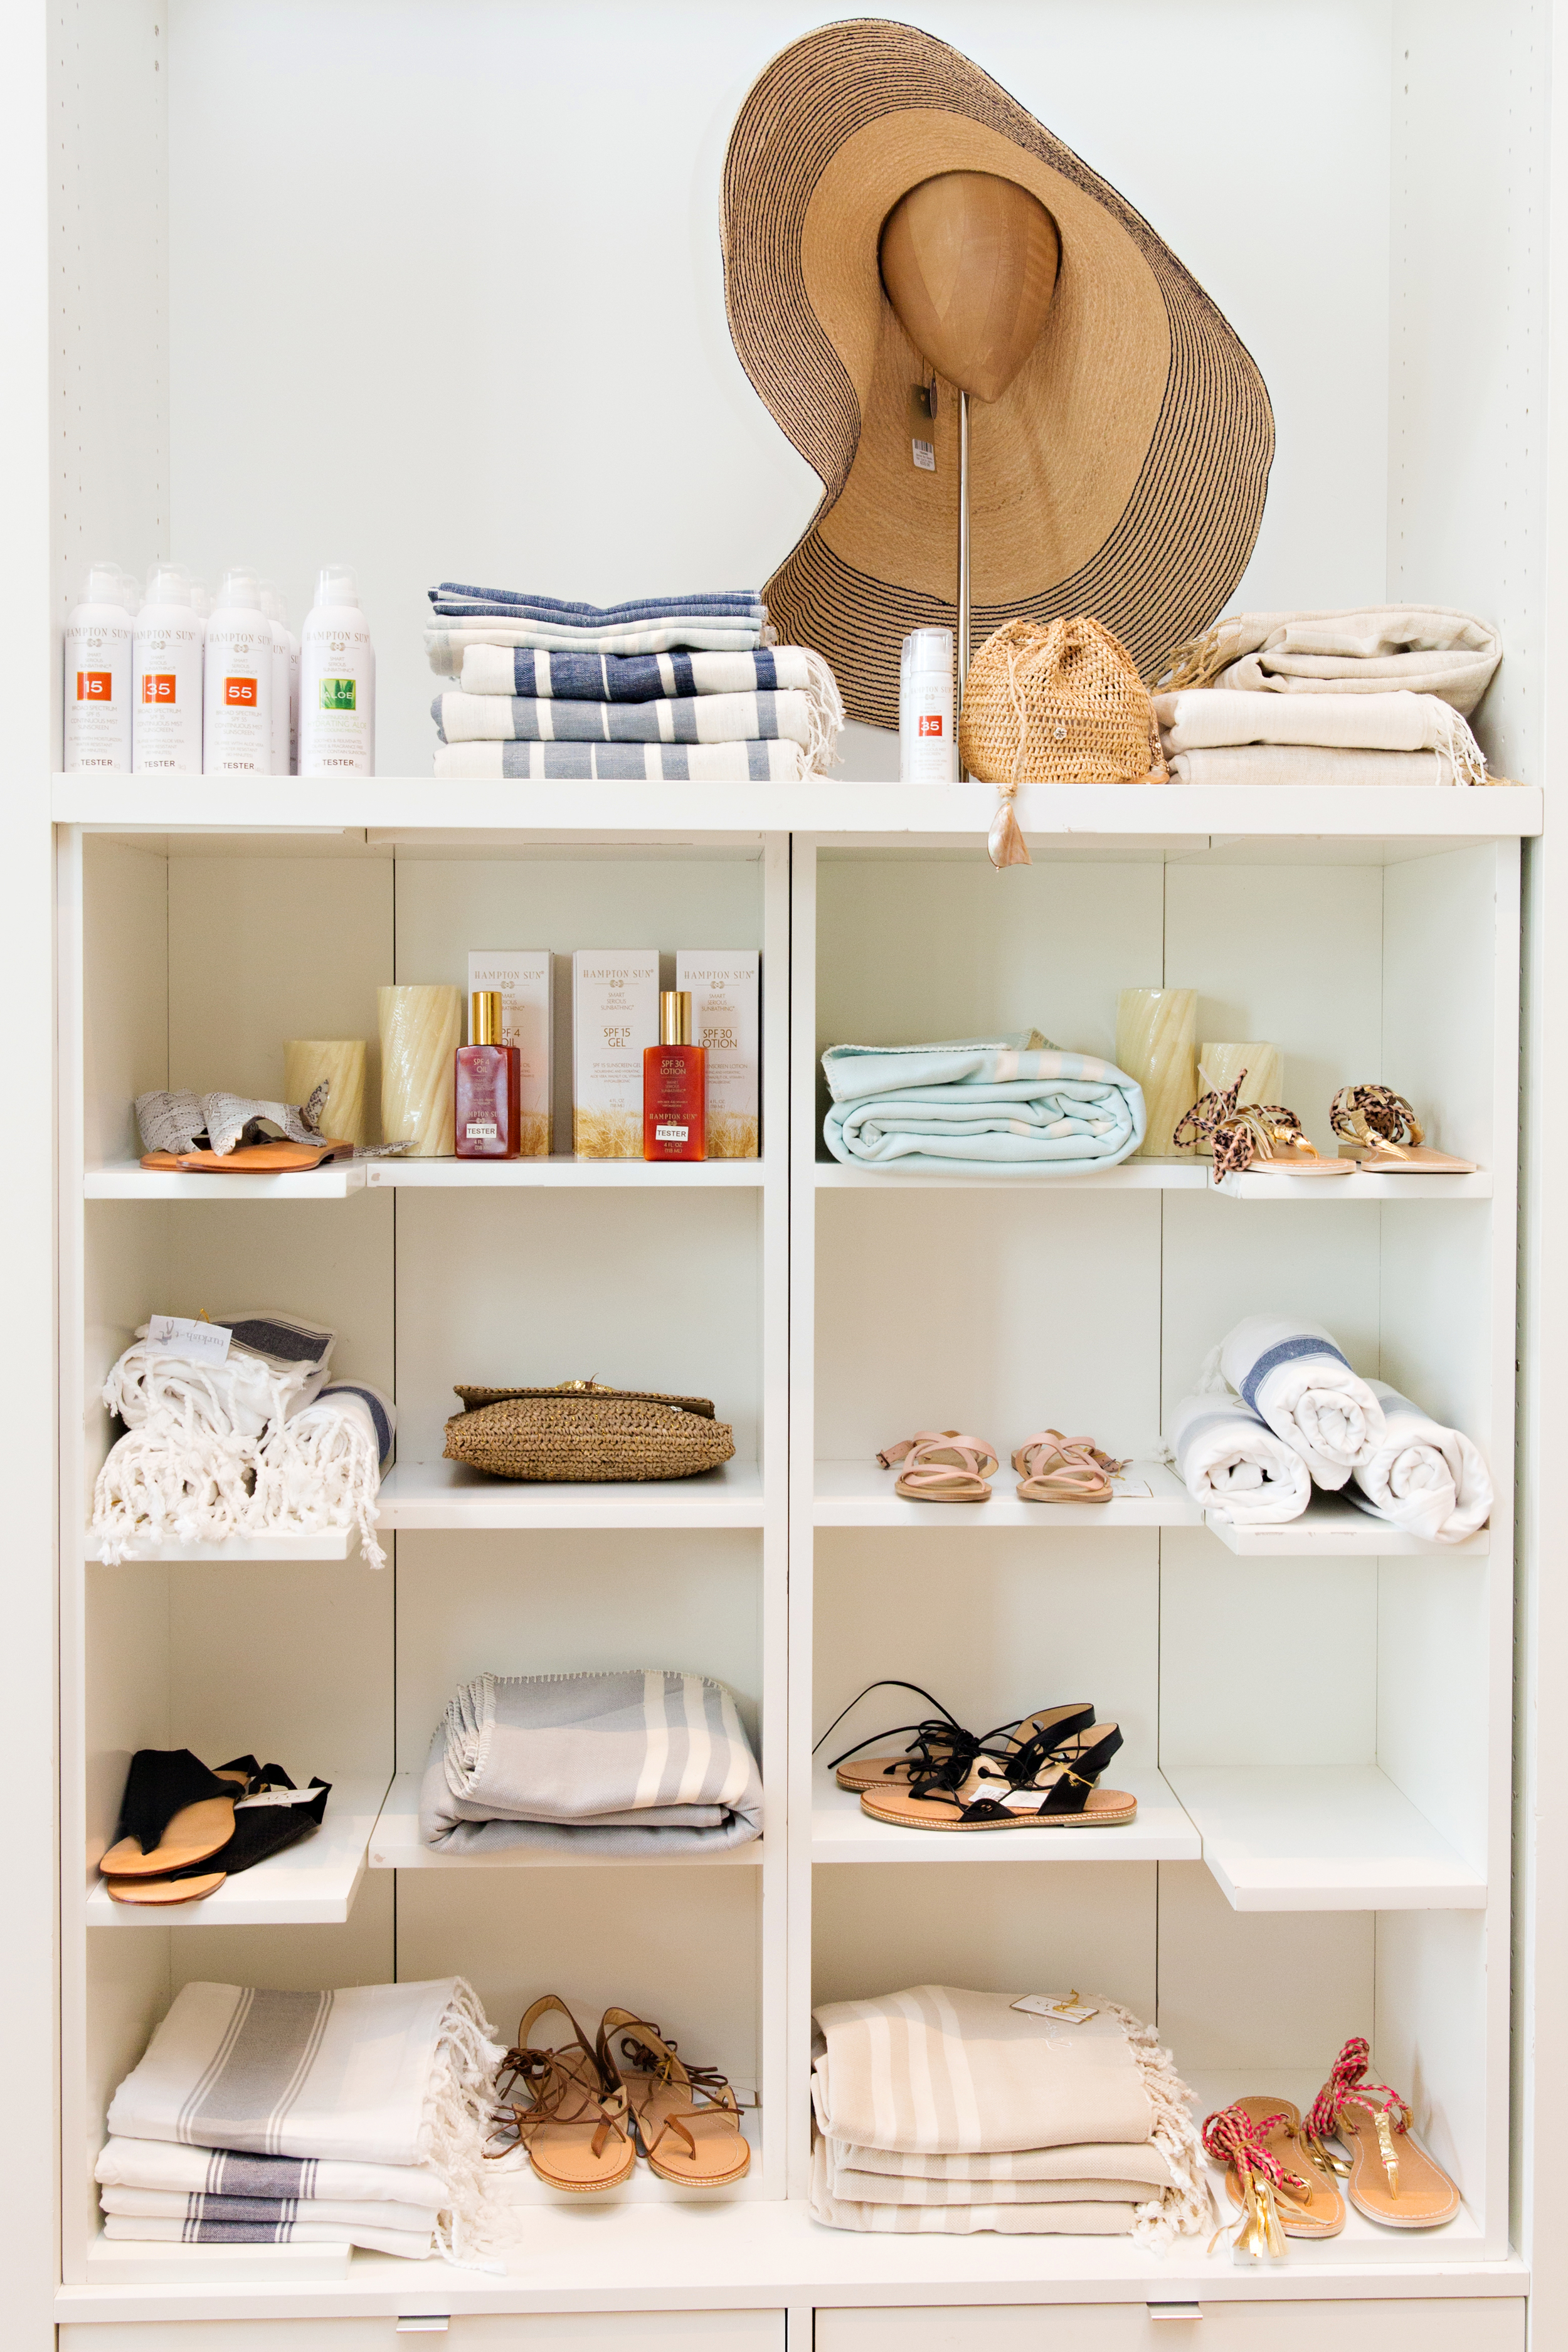 The Alys Shoppe has something for everyone. Men's and Women's apparel & shoes, beautiful home goods & accessories, Turkish Towels, beach hats, Swell bottles, gifts & more....